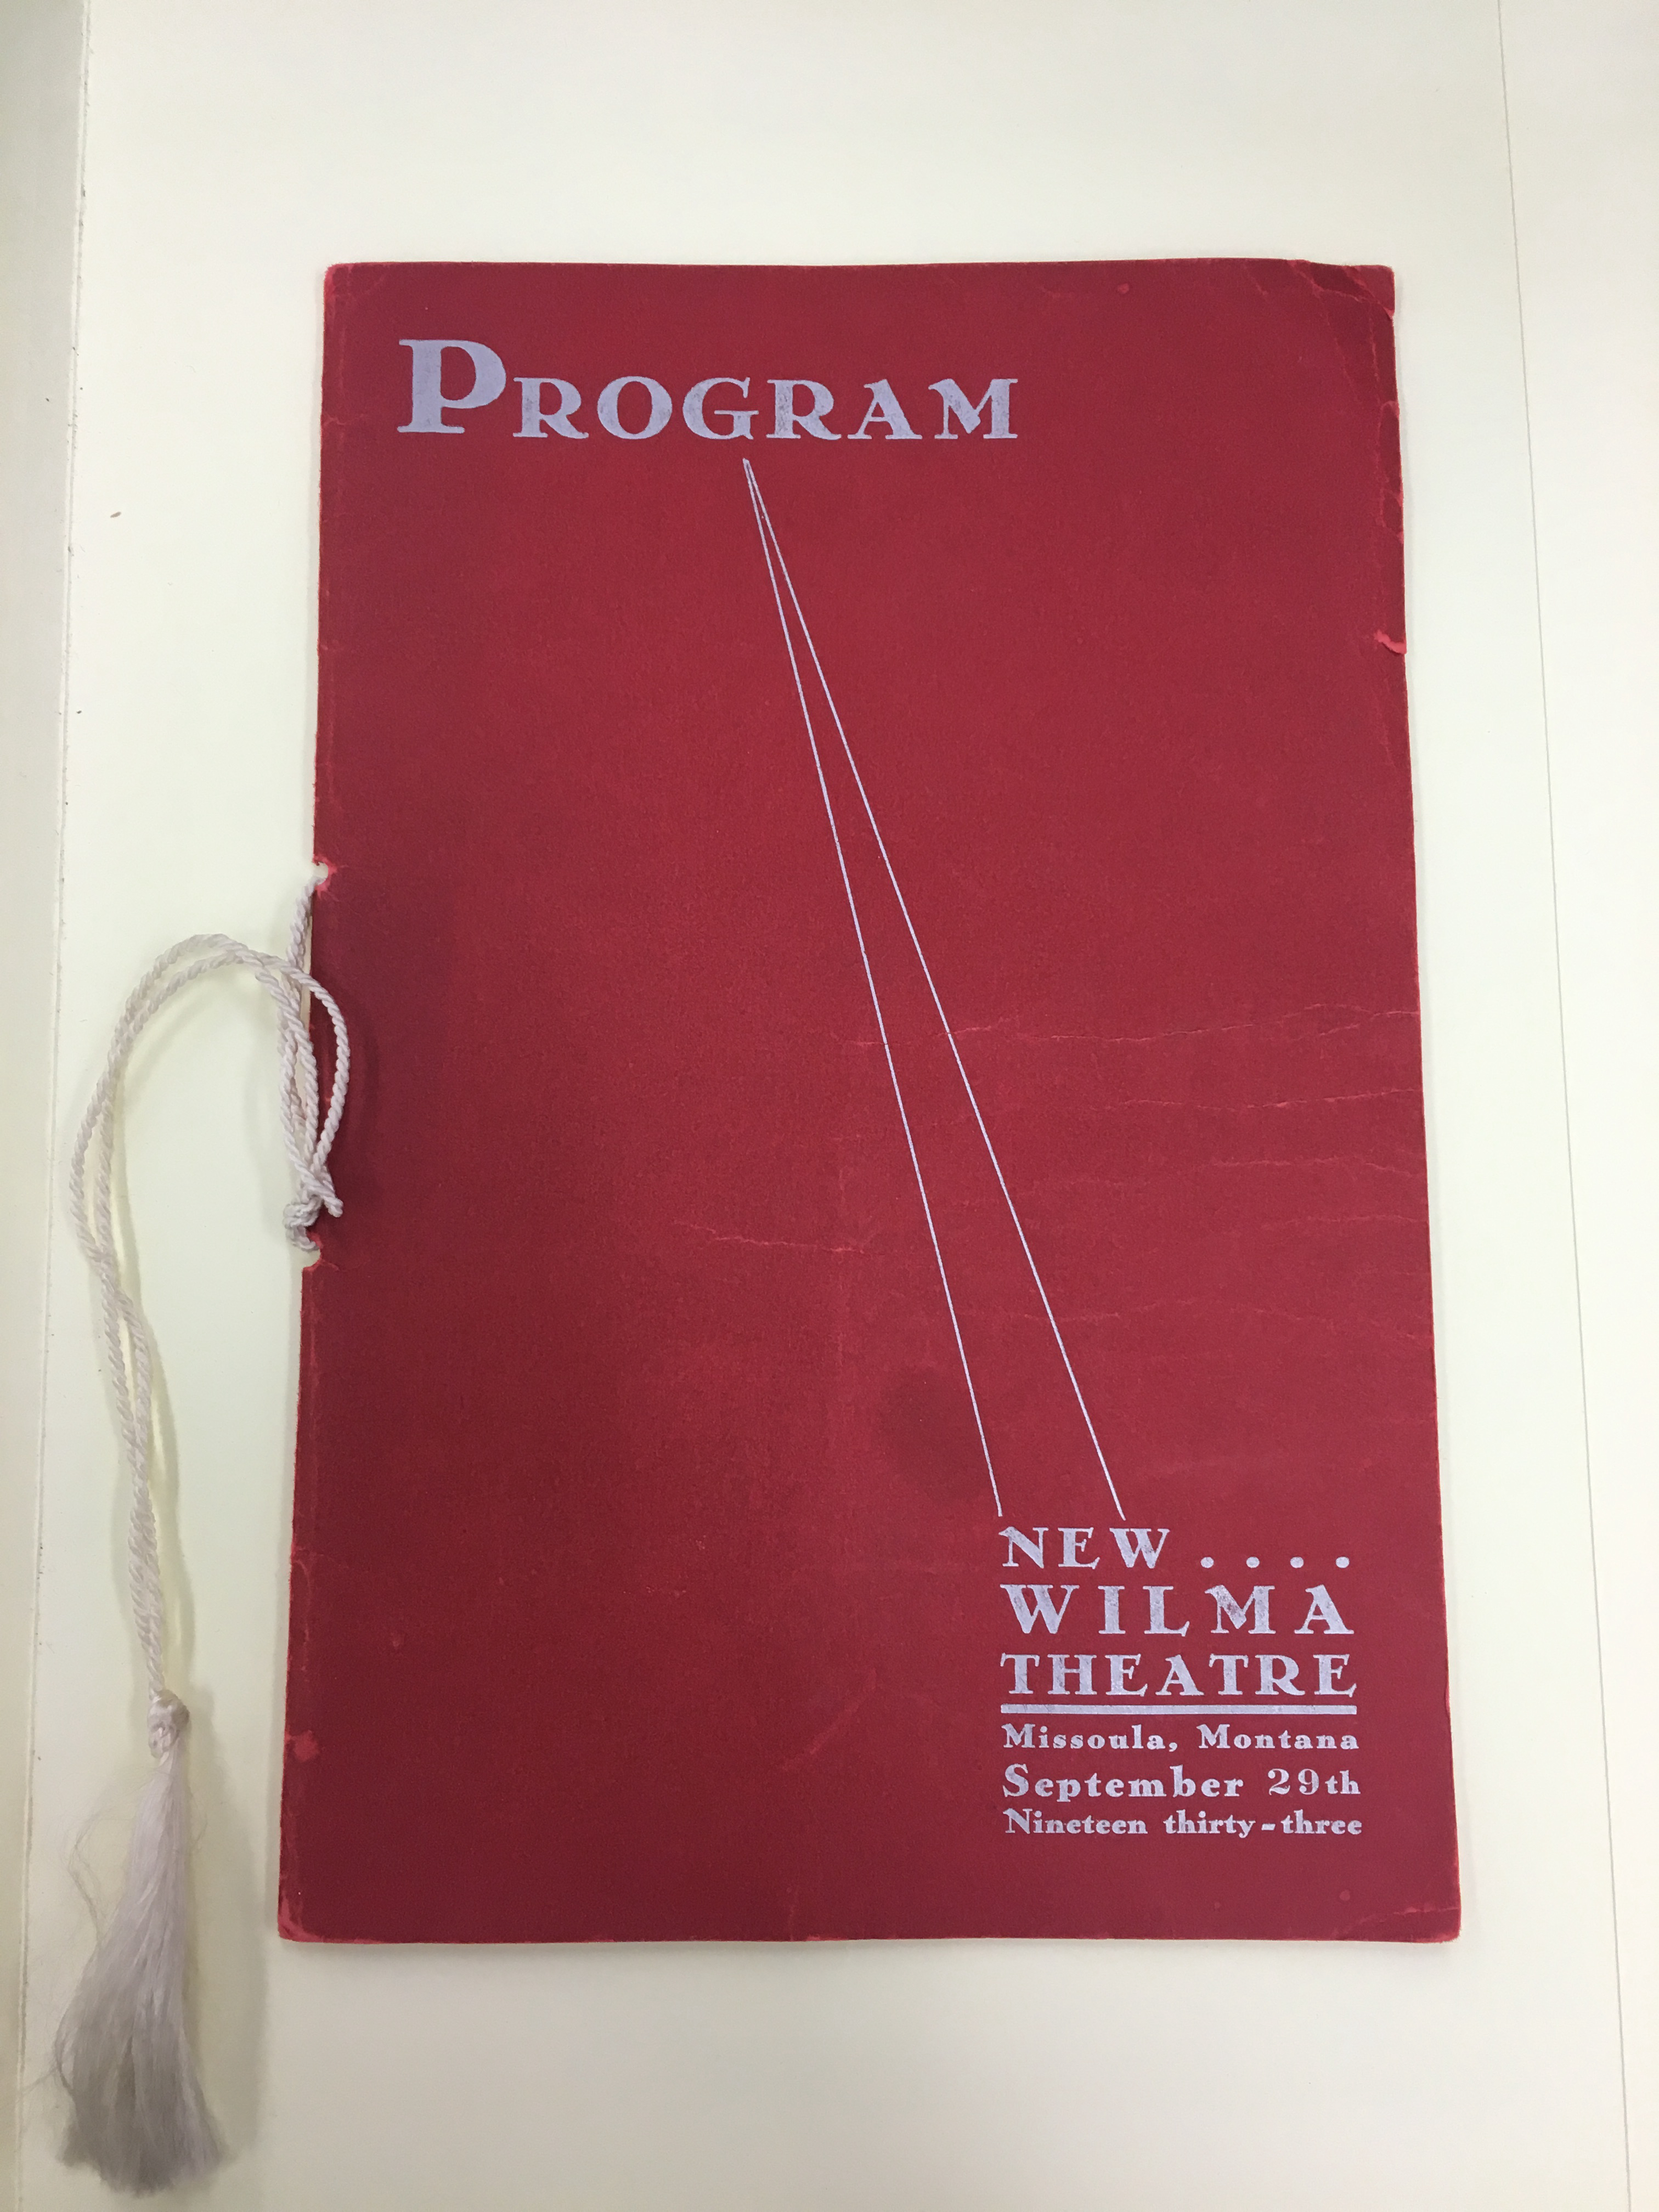 This is an original program from the Wilma Theatre from September 29th, 1933.